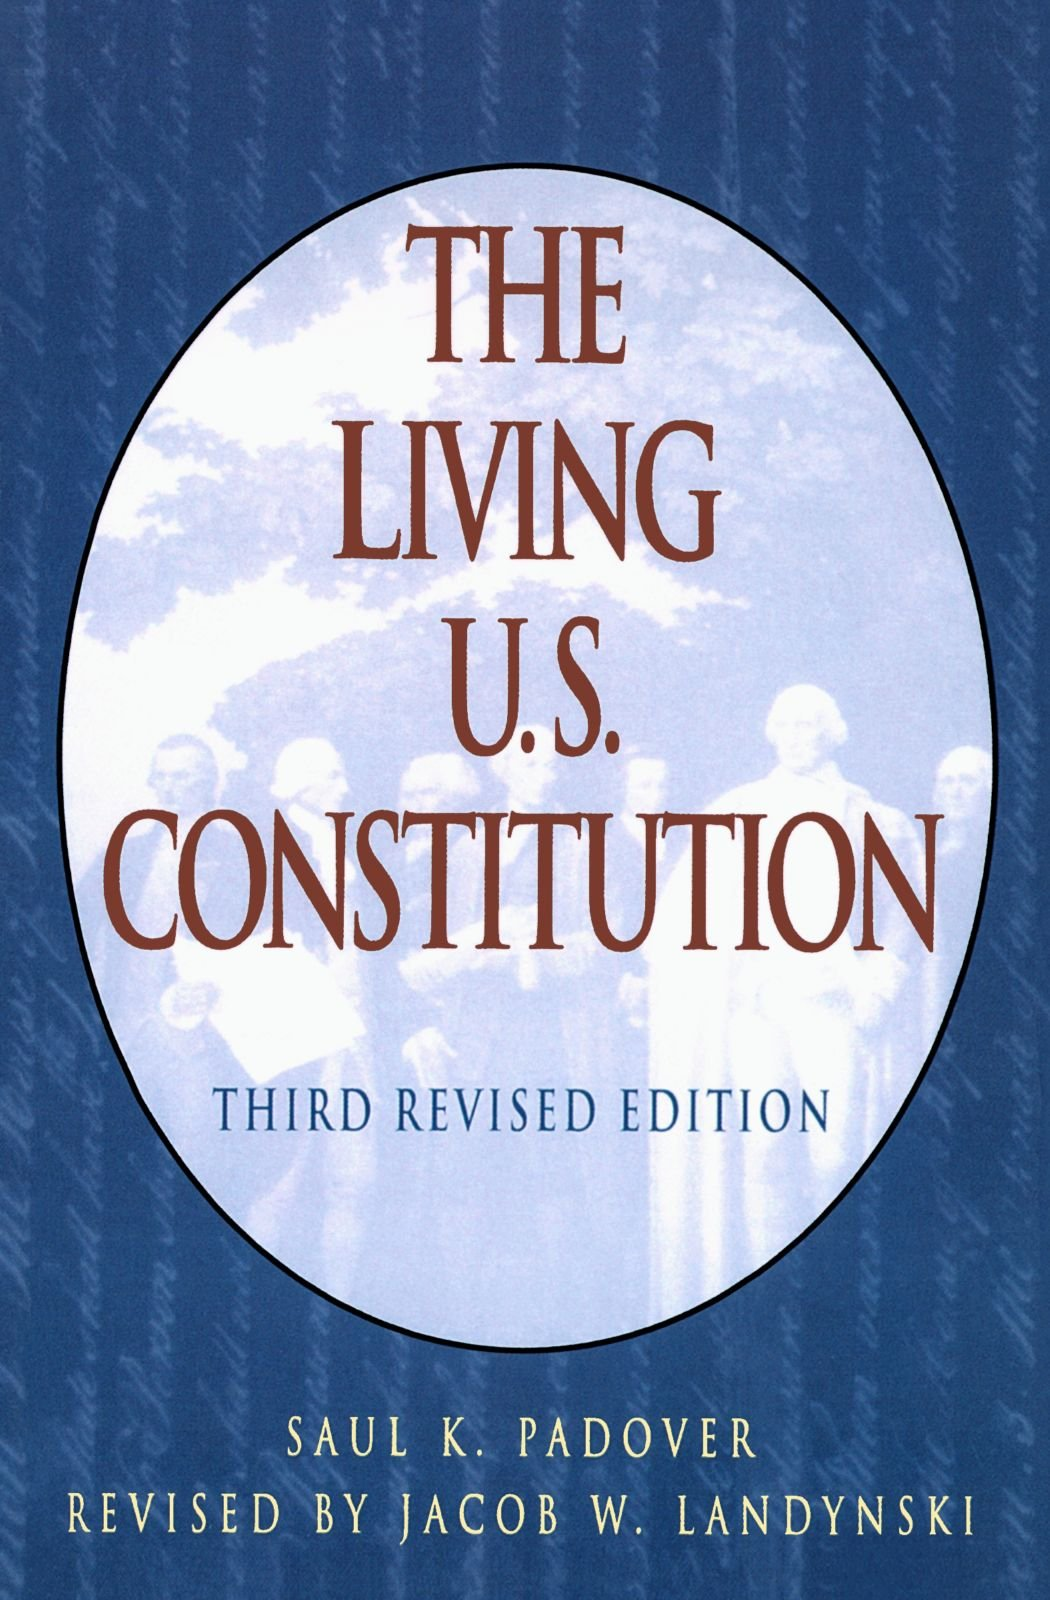 The Living U.S. Constitution: Third Revised Edition